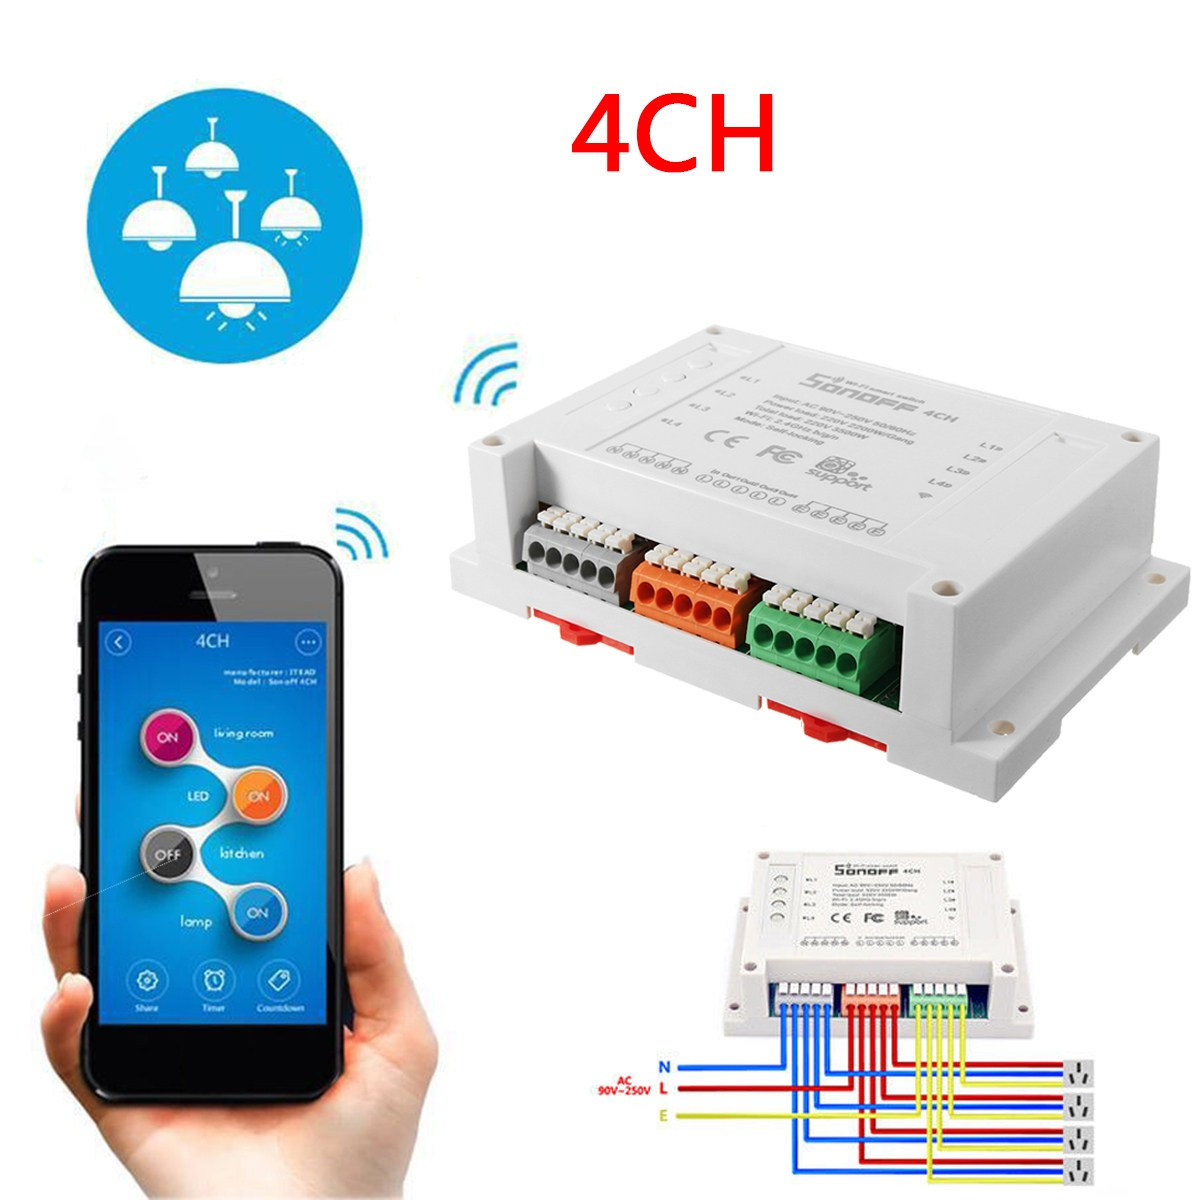 Sonoff 4Channel Smart Wifi Switch DIY Smart Wireless Remote Switch Domotica Wifi Light Switch Smart Home Automation Controller itead sonoff smart wifi switch diy smart wireless remote switch domotica wifi light switch smart home controller work with alexa